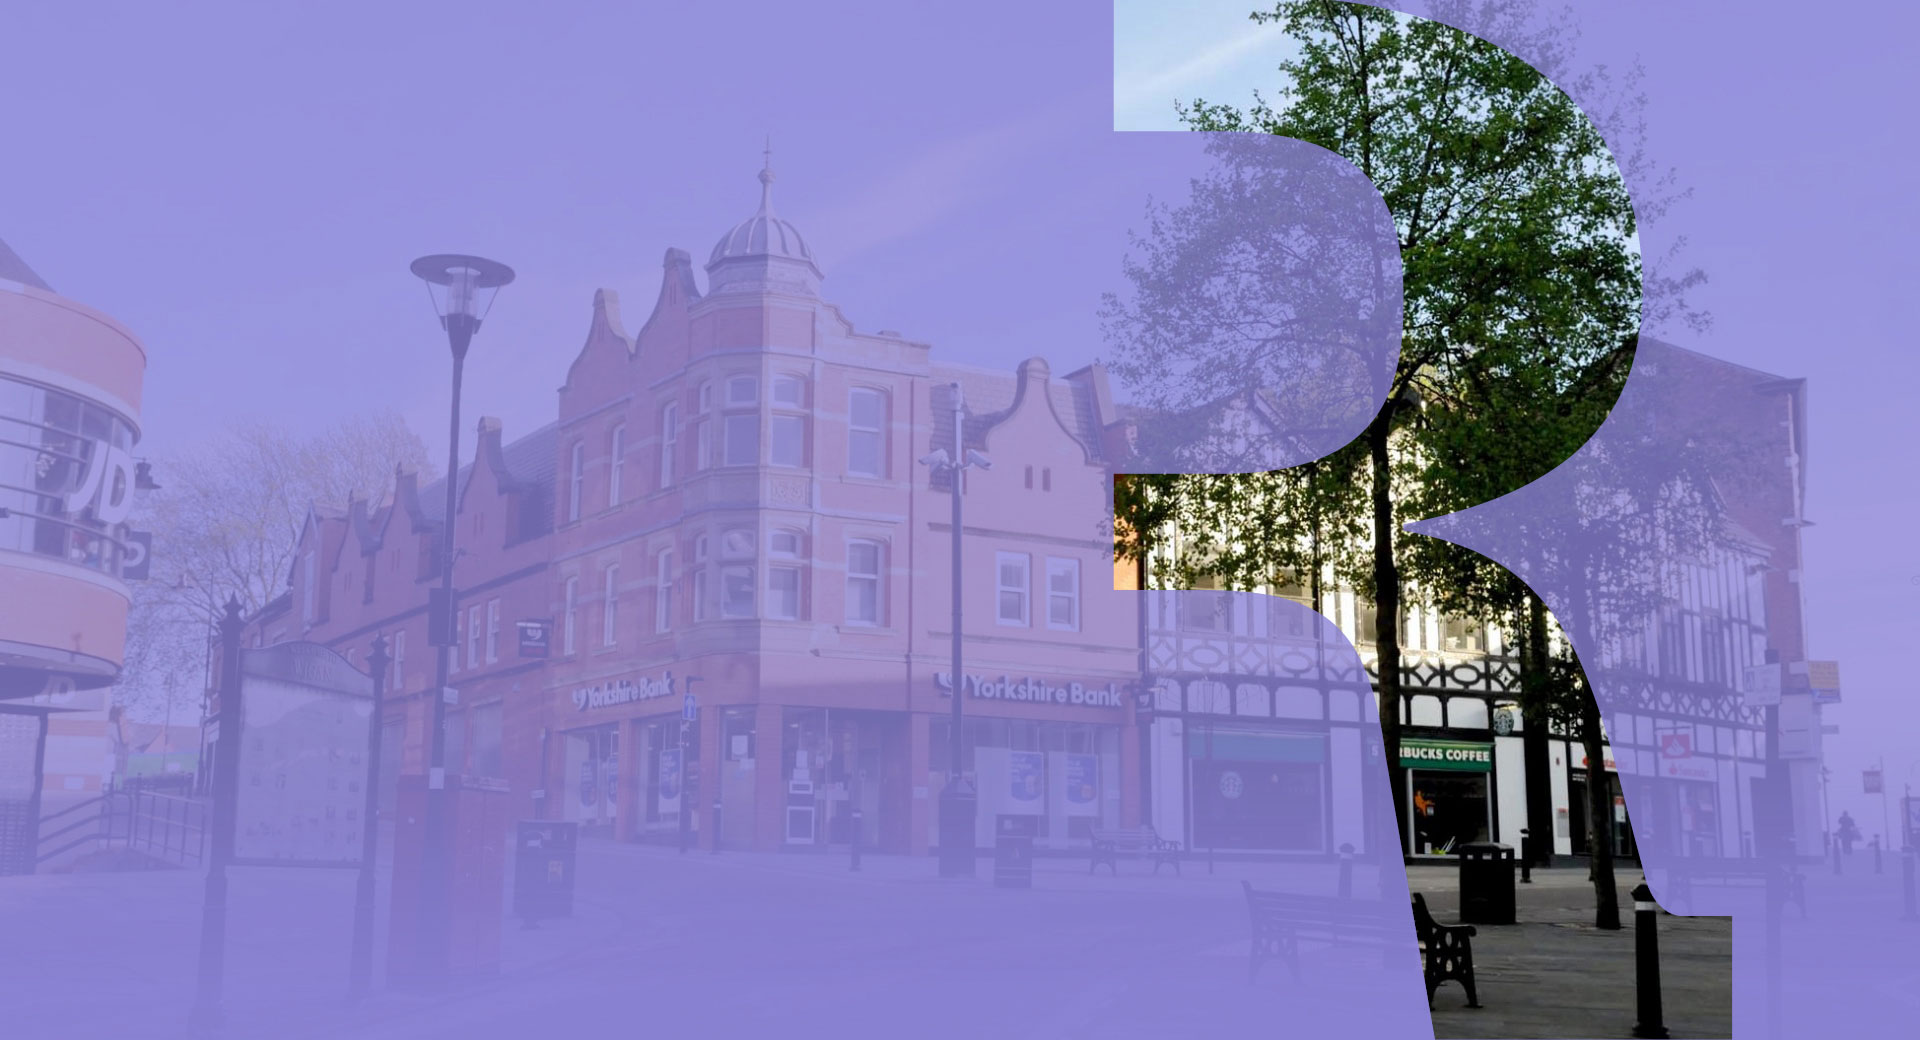 roundhouse retail properties